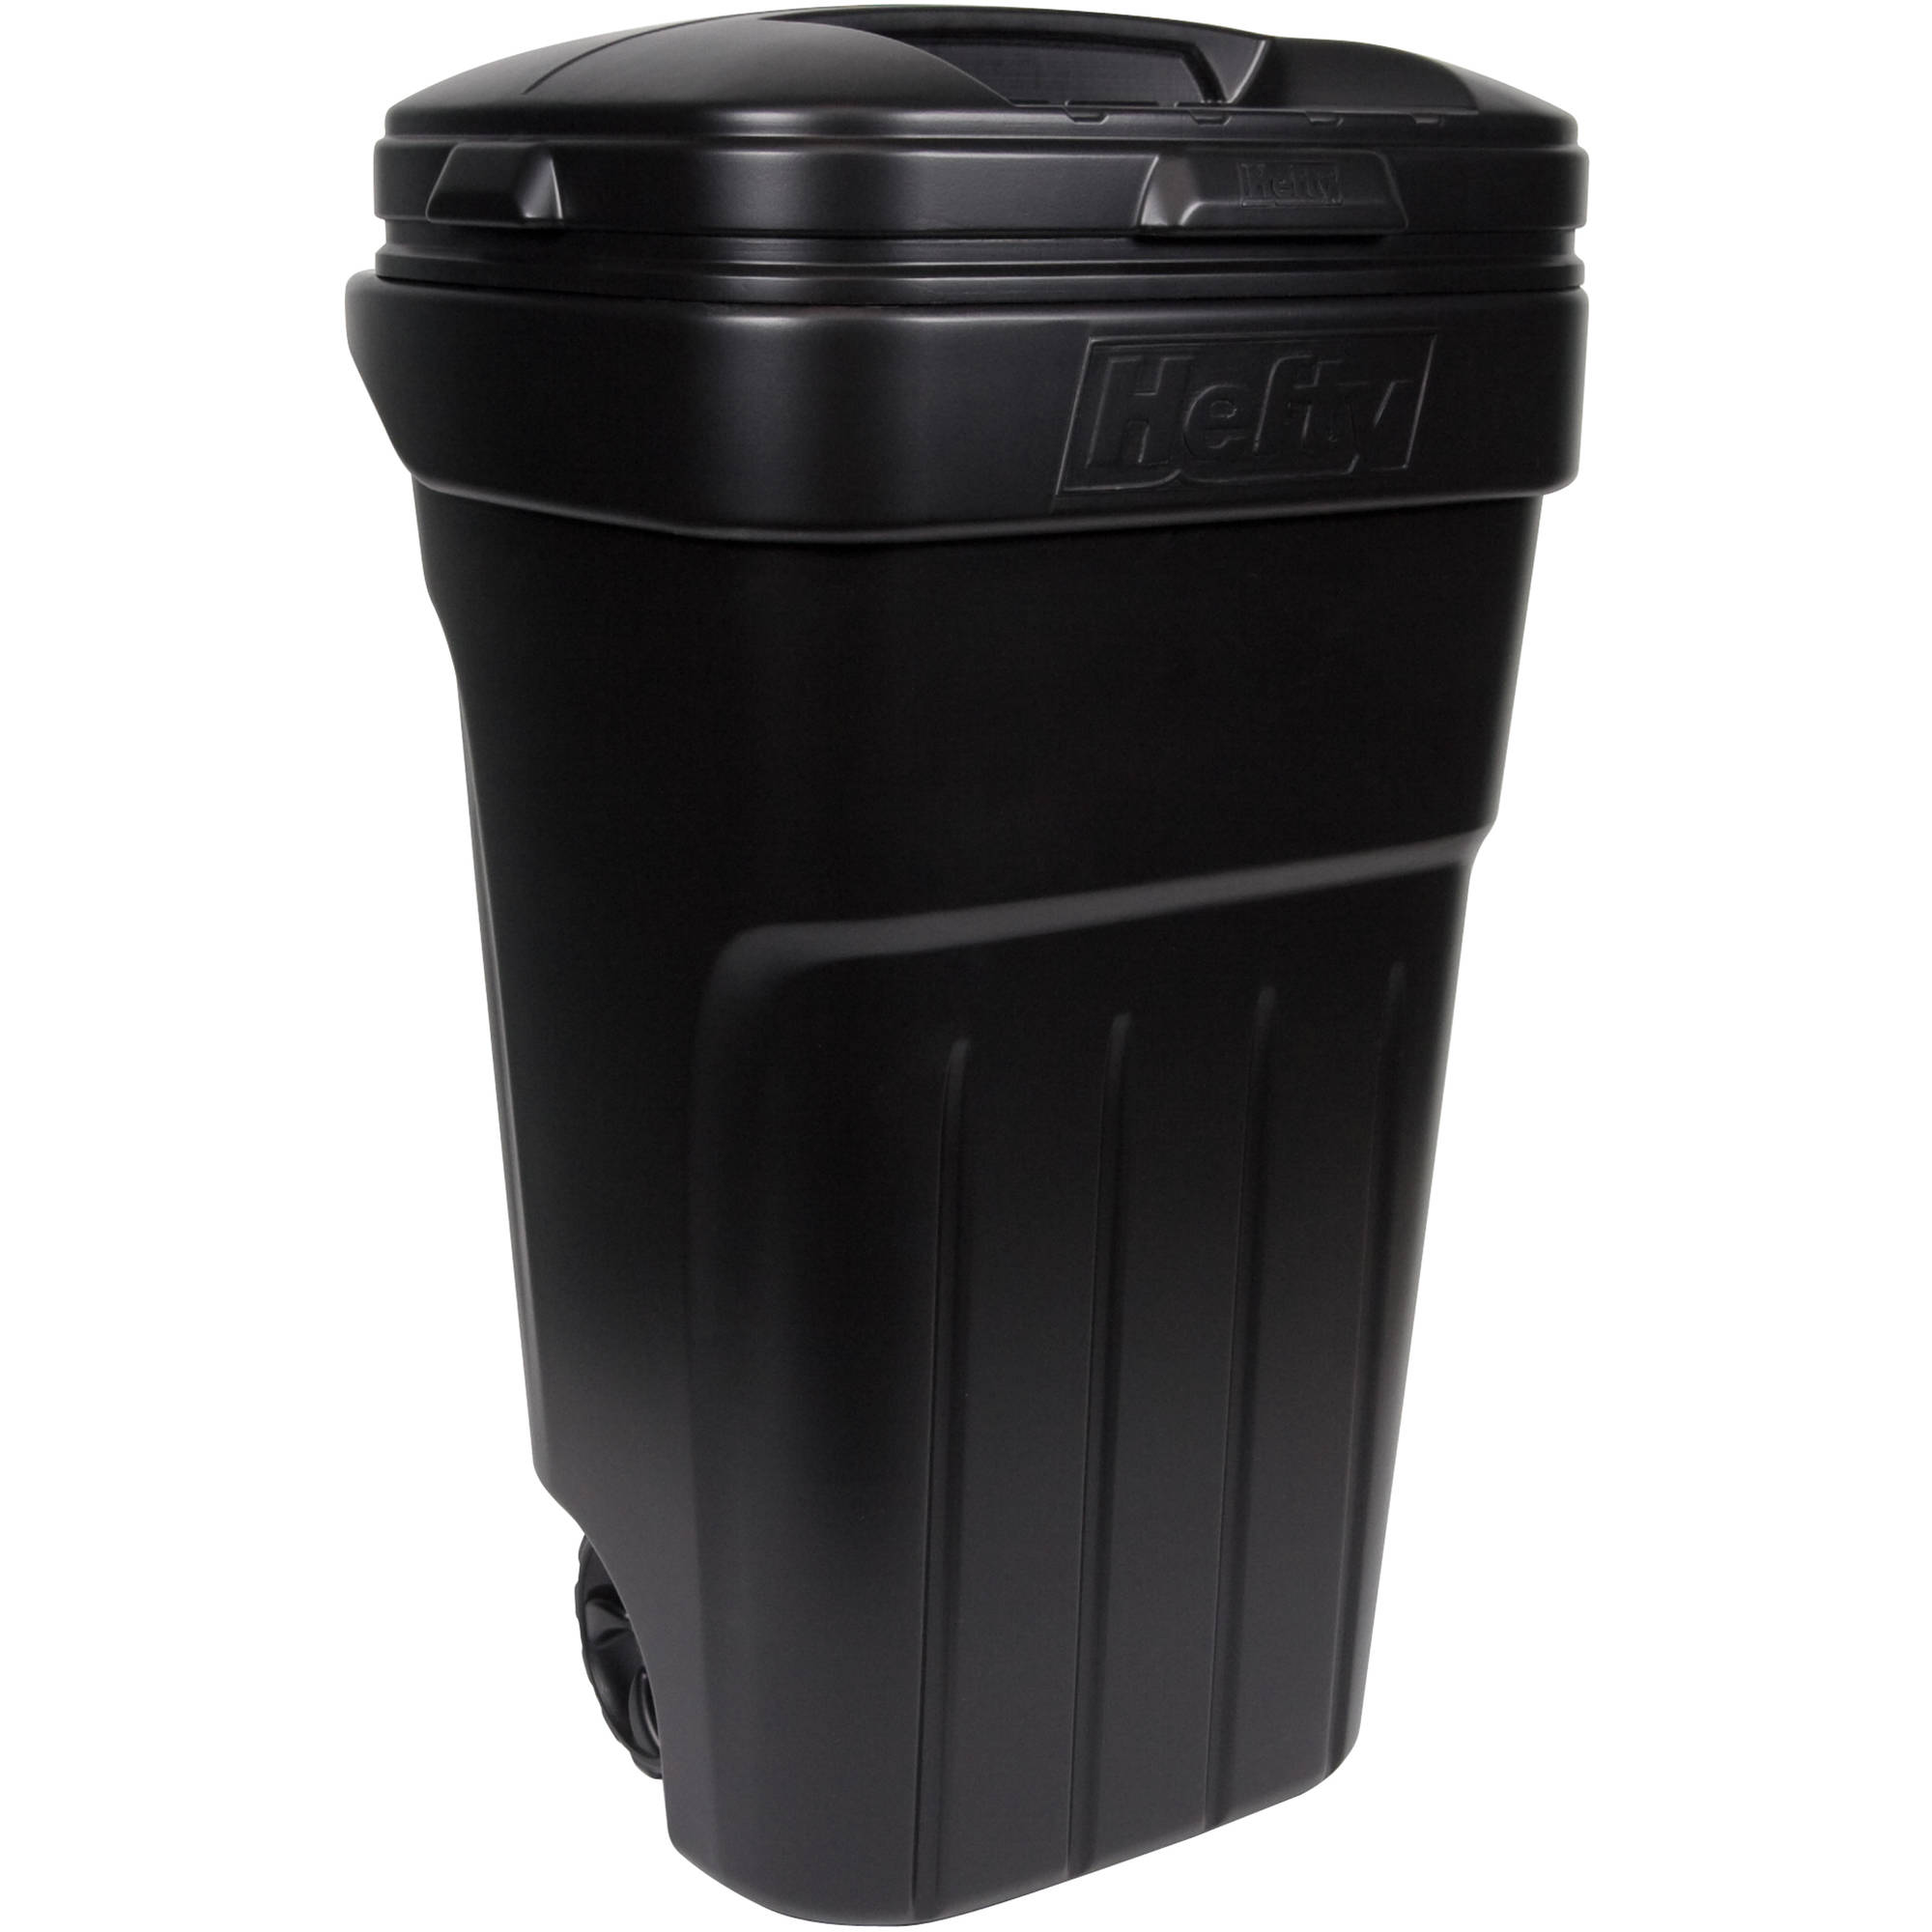 Hefty 32 Gallon Wheeled Outdoor Trash Can Black Walmart Com